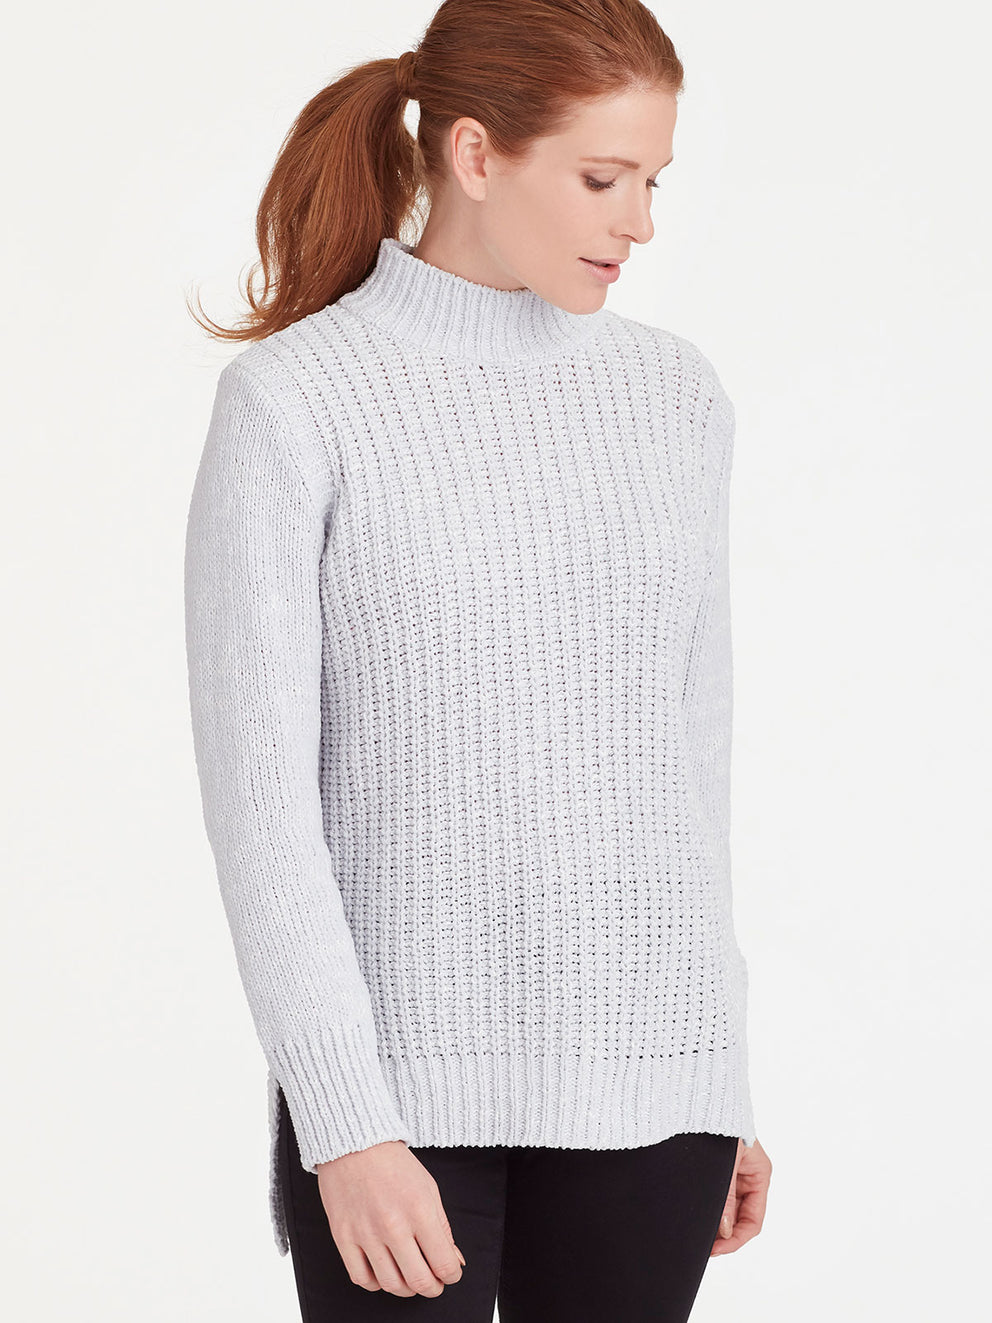 The Jones New York Chenille Mock Neck Top in color Silver Grey Heather - Image Position 1